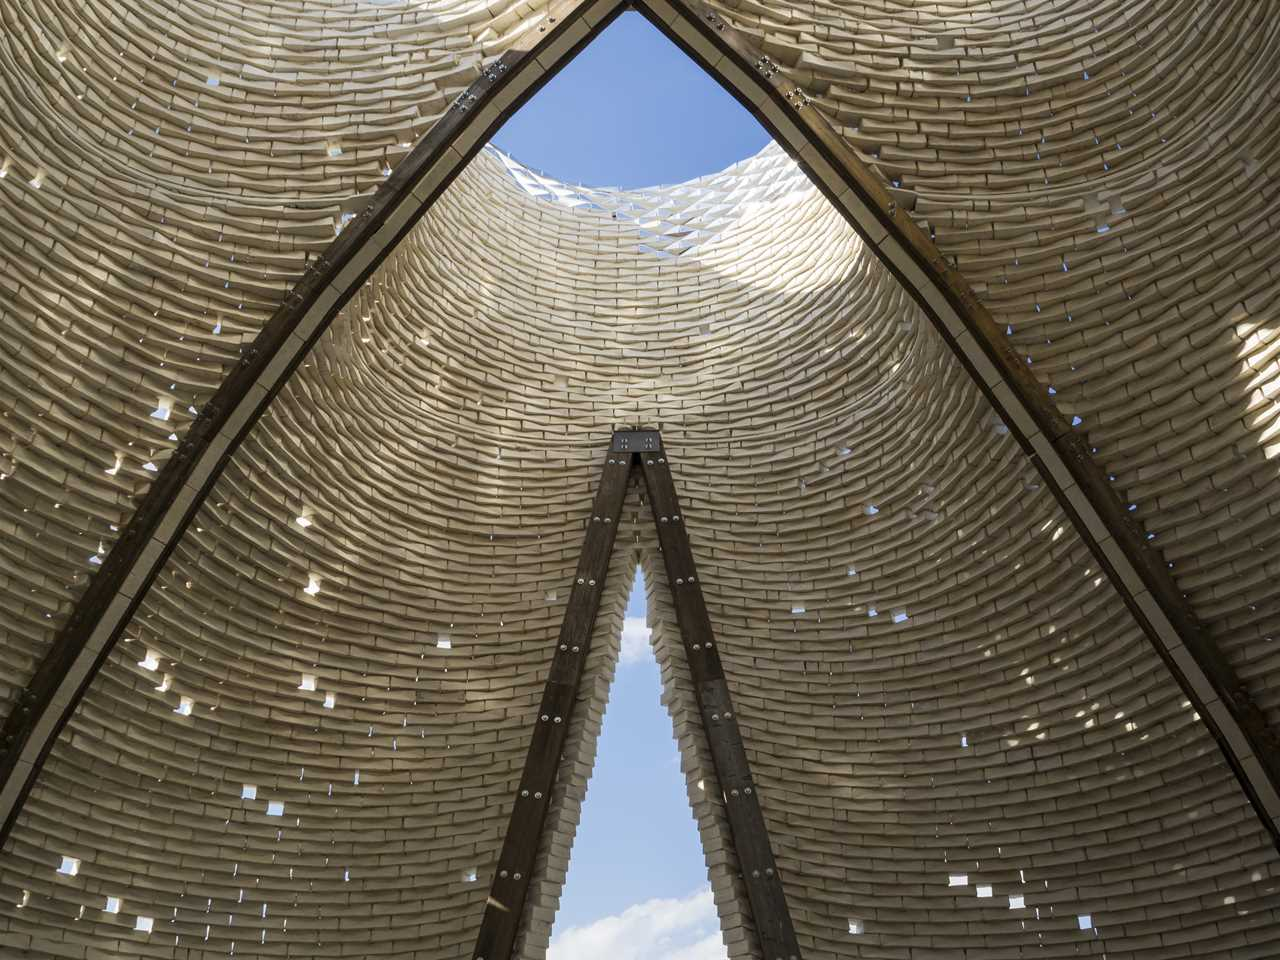 Global finalist entry 2015 - Hy-Fi: Zero carbon emissions compostable structure